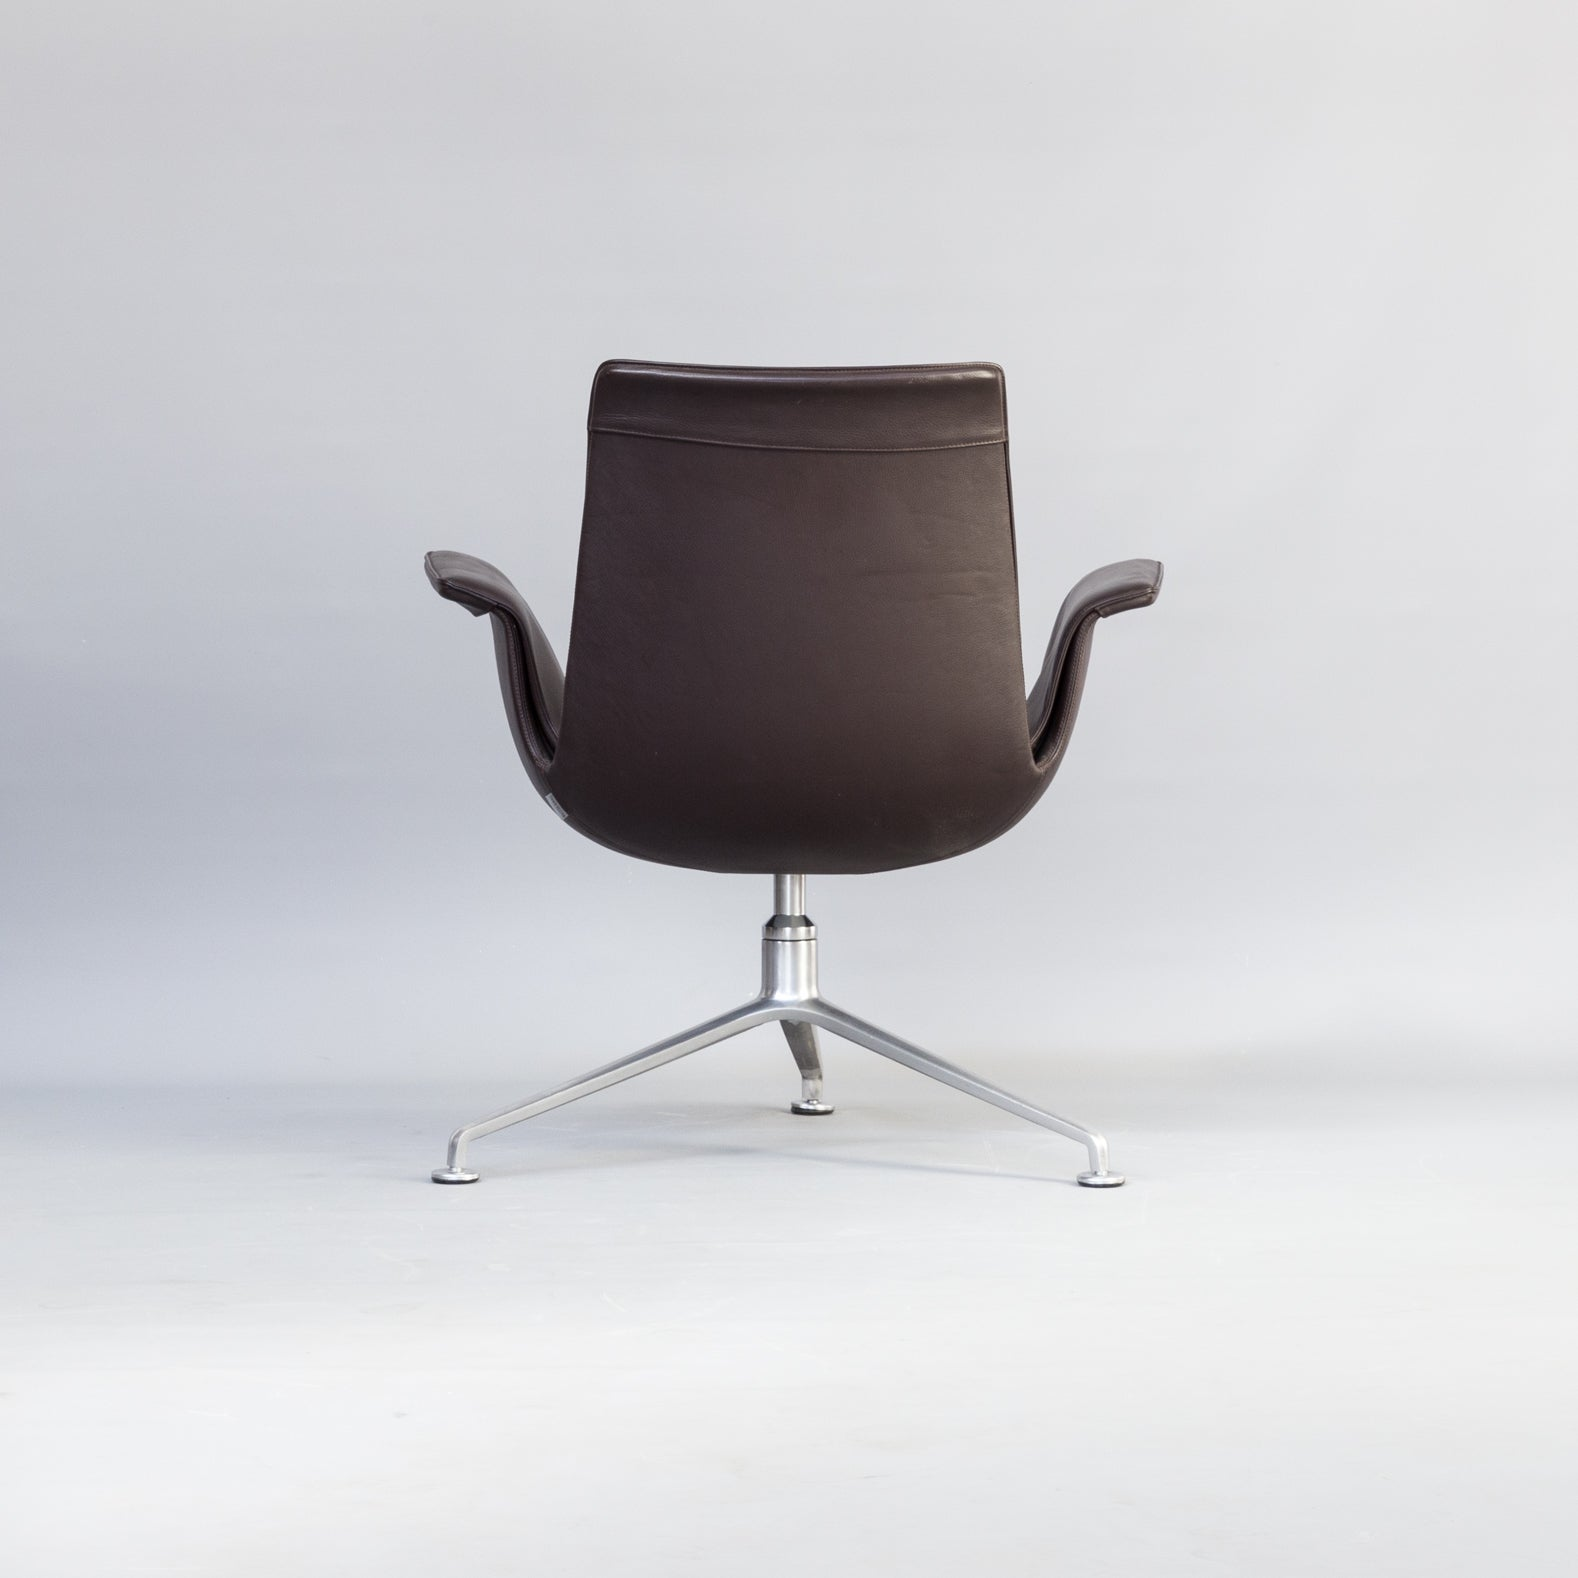 Walter Knoll Design Fauteuil.1950s Jorgen Kastholm And Preben Fabricius 6727 Tulip Lounge Chair